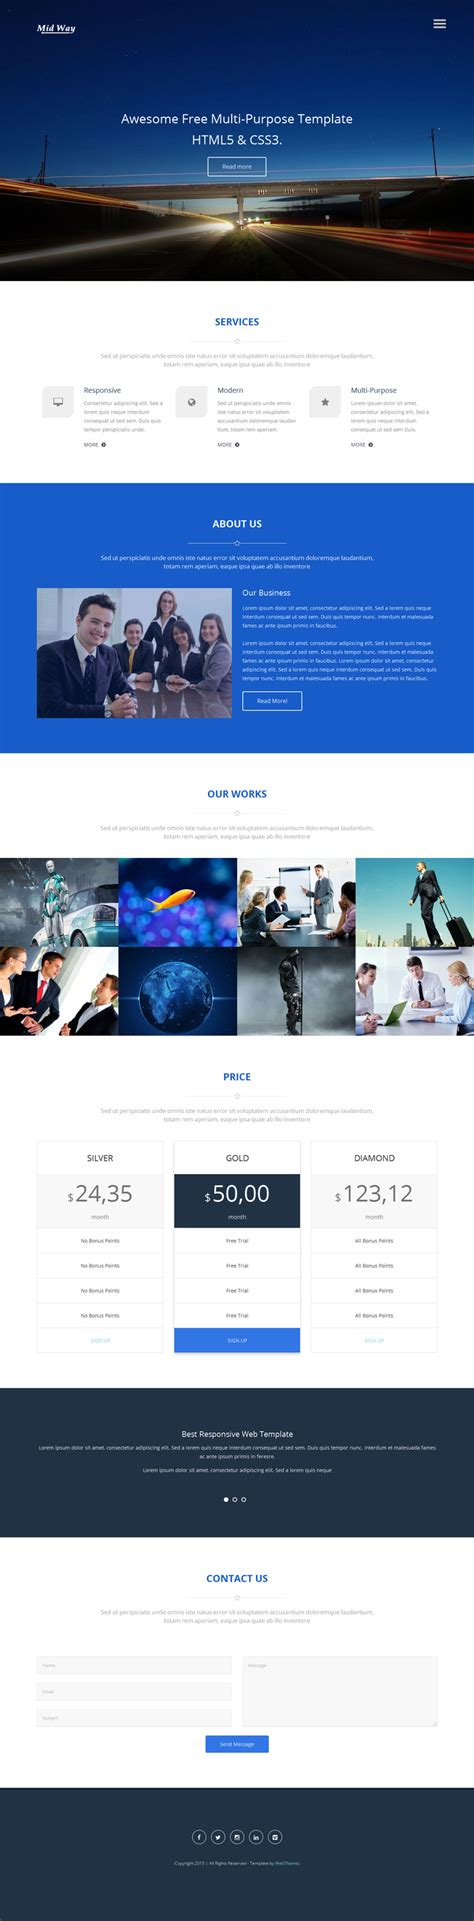 10 Best Free Website Html5 Templates February 2015 Free Website Templates Html5